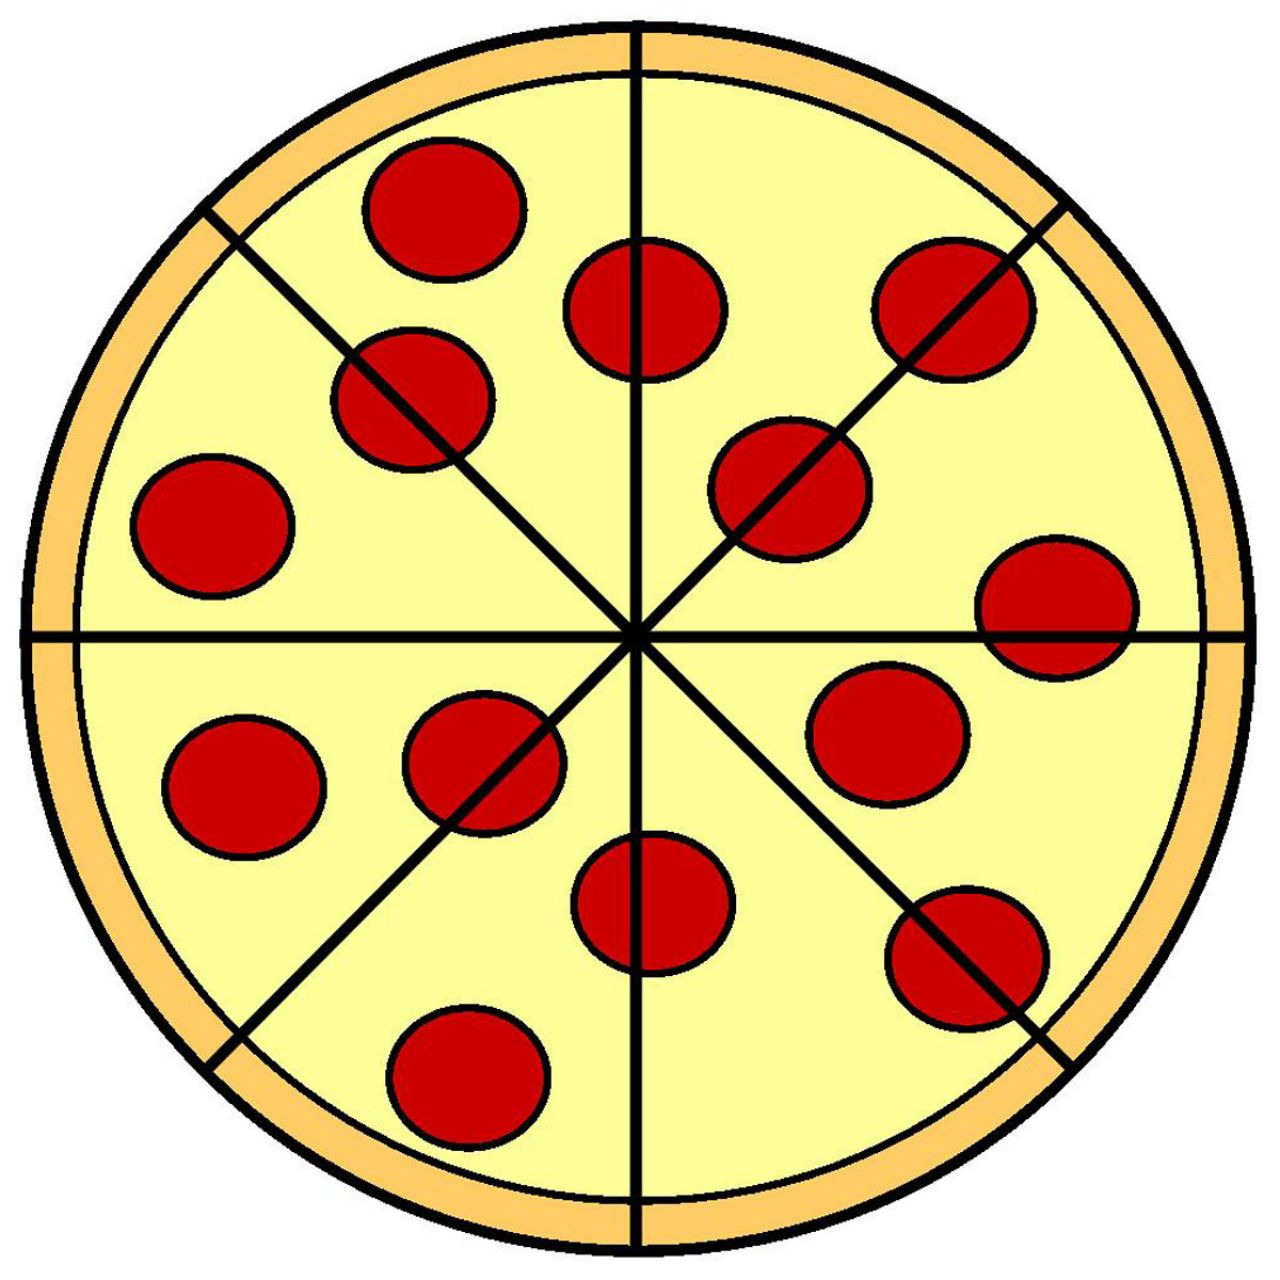 Pizza Cartoon Clip Art on Circle Fraction